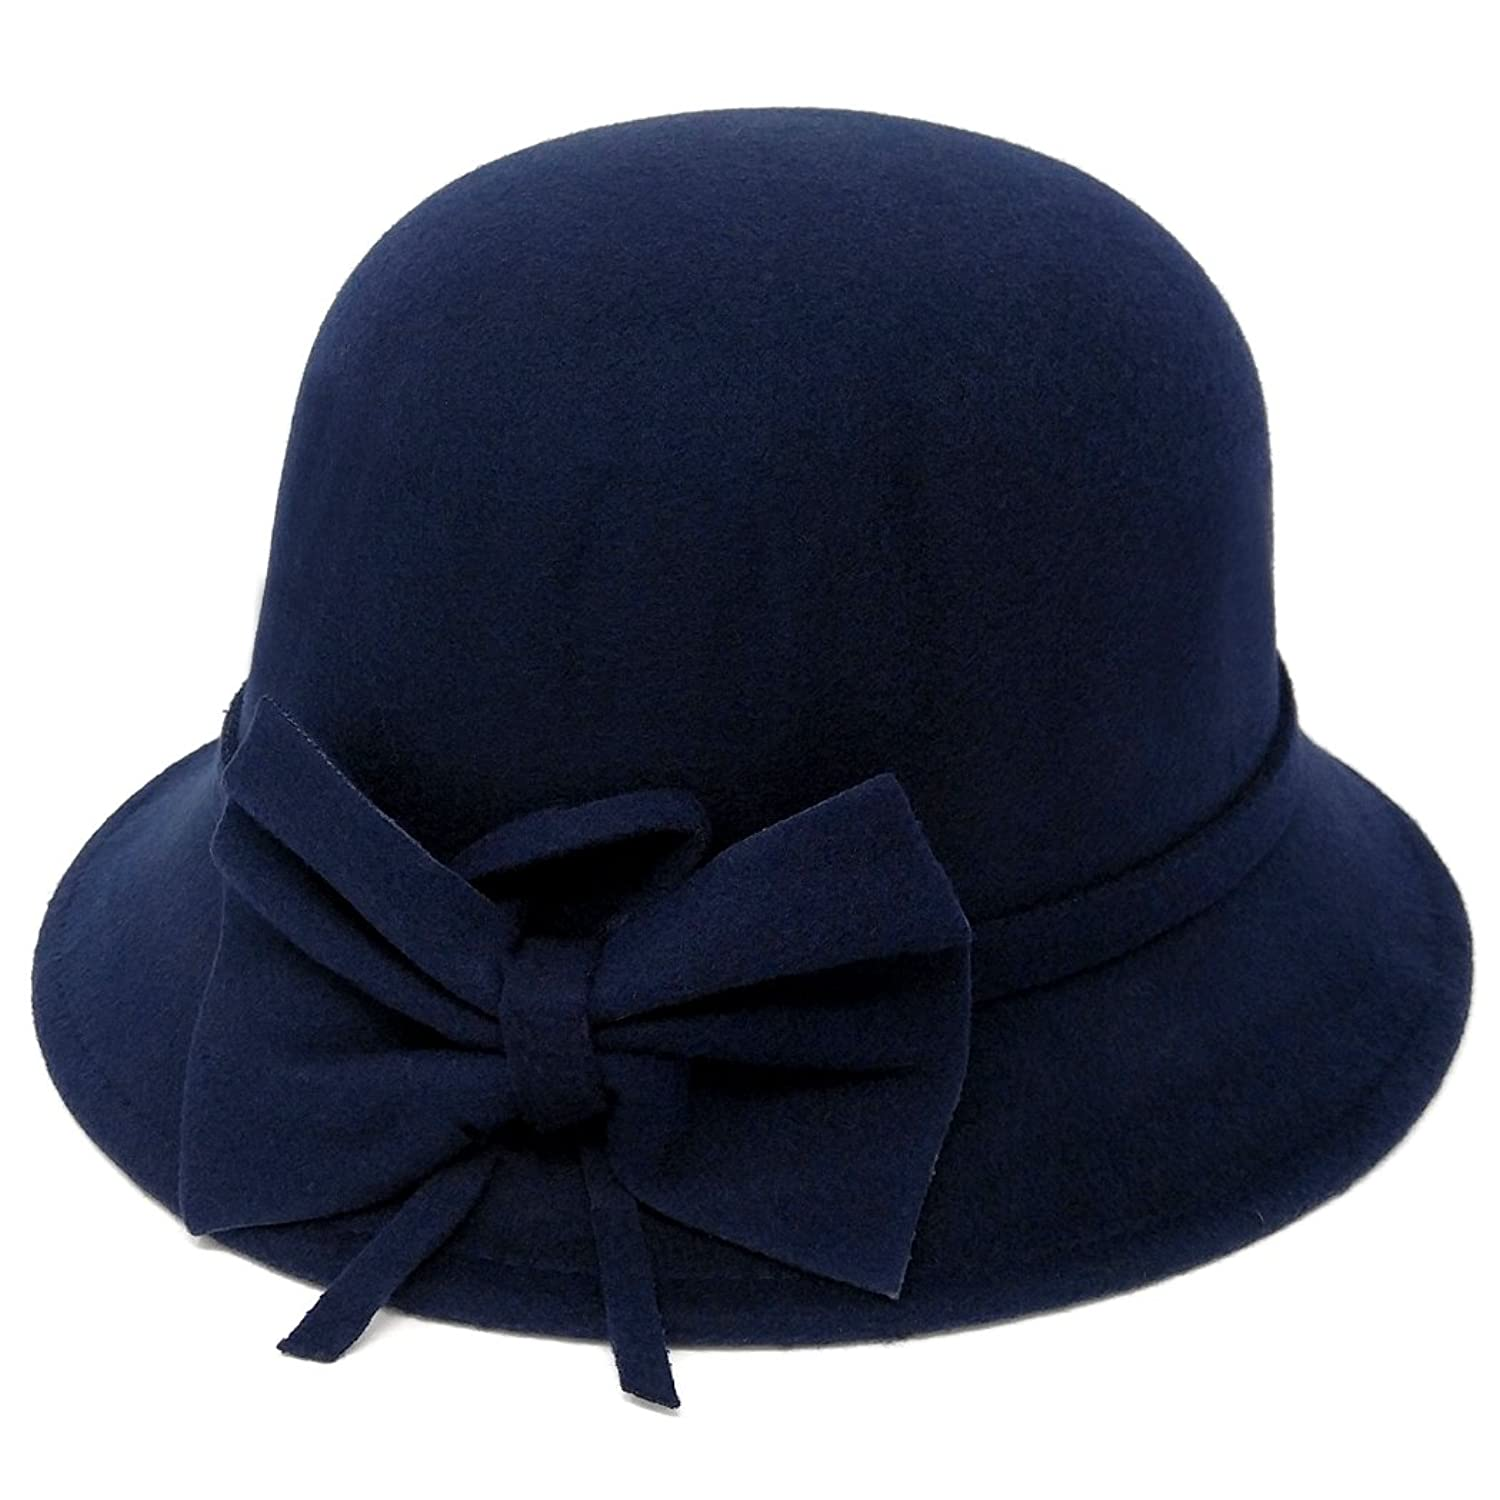 1920s Accessories | Great Gatsby Accessories Guide Vintage Style Felt Cloche Fedora Hat Matching Hatband with Side Bow Adjustable $24.95 AT vintagedancer.com